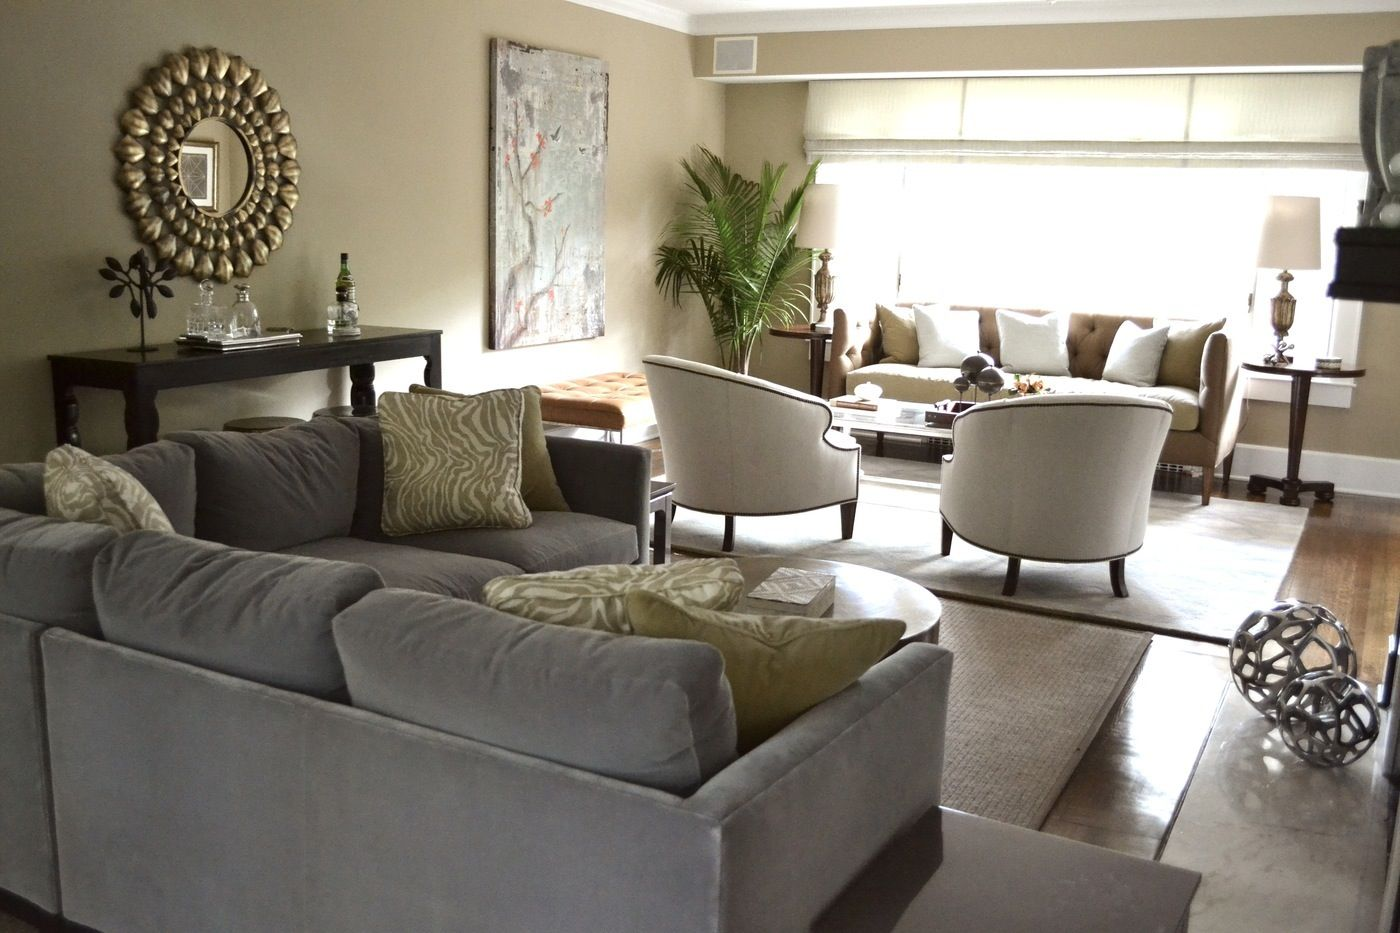 Living room with two seating areas  Future Living Room in 2019  Rectangular living rooms